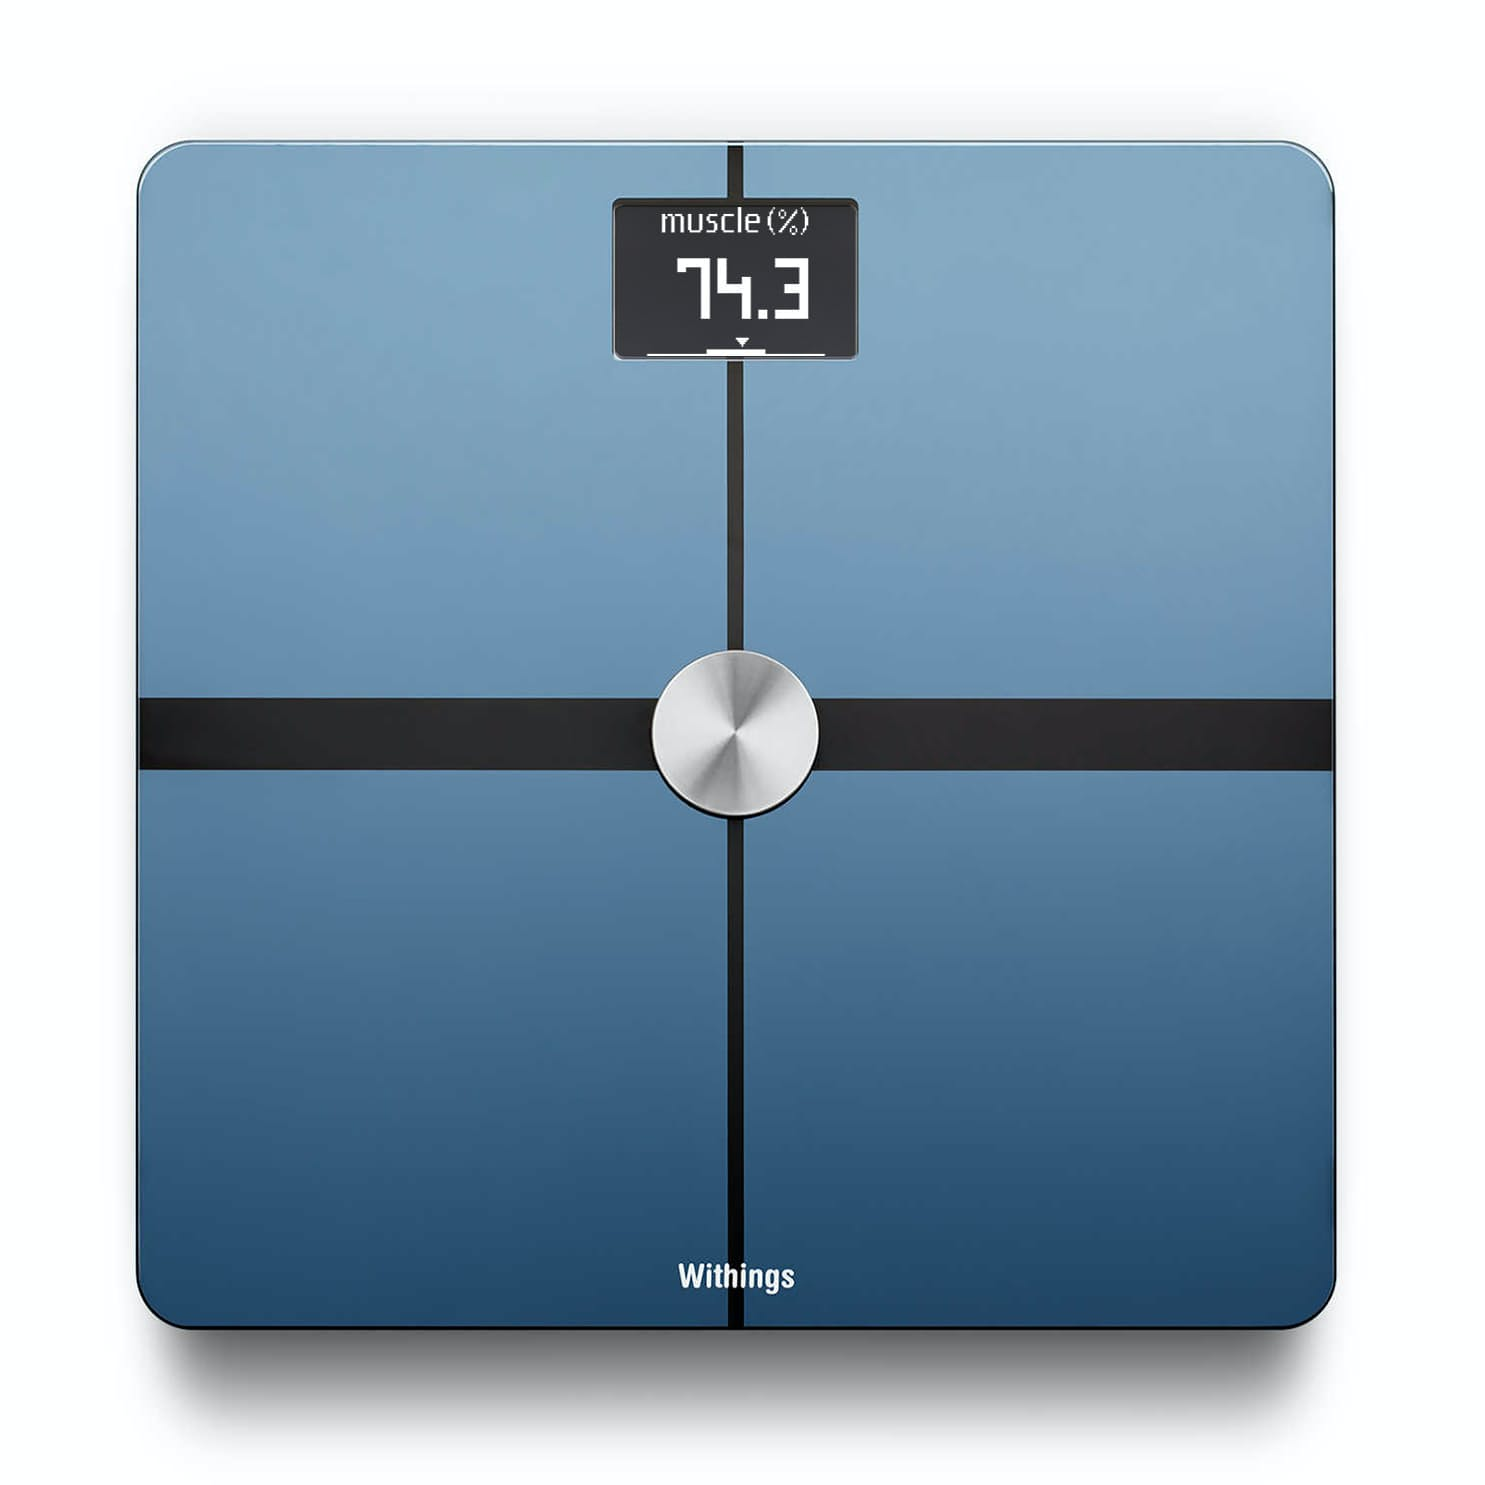 Pyznzqus7j withings body scale 0 original